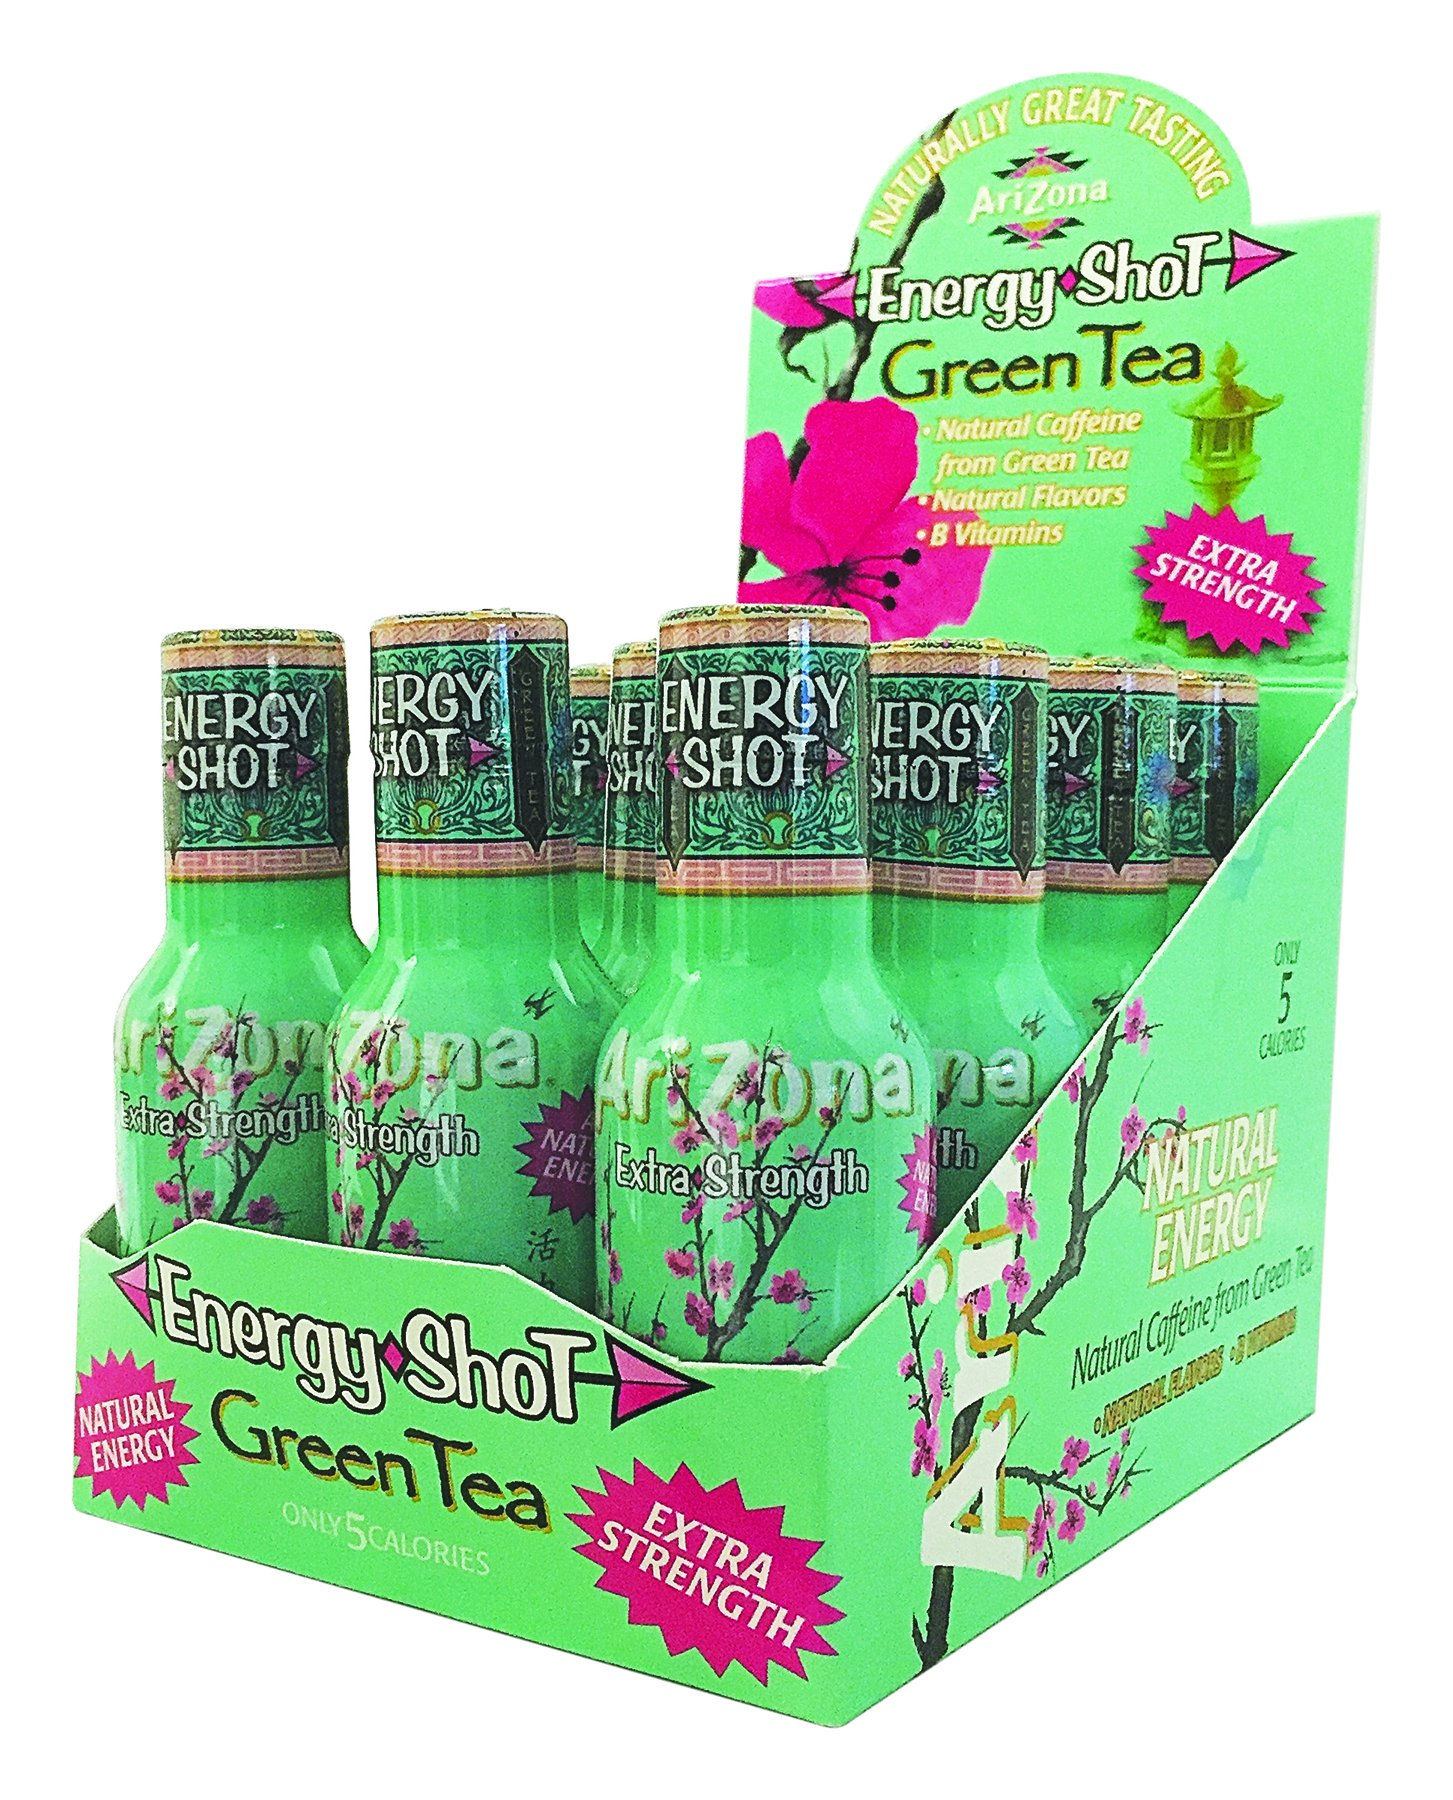 AriZona Extra Strength Energy Shot Green Tea w/ Honey, 2oz bottle (48 Count), Caffeine Boost Shot, With Green Tea Derived Caffeine, The Same Amount of Caffeine as a Cup of Coffee by Arizona